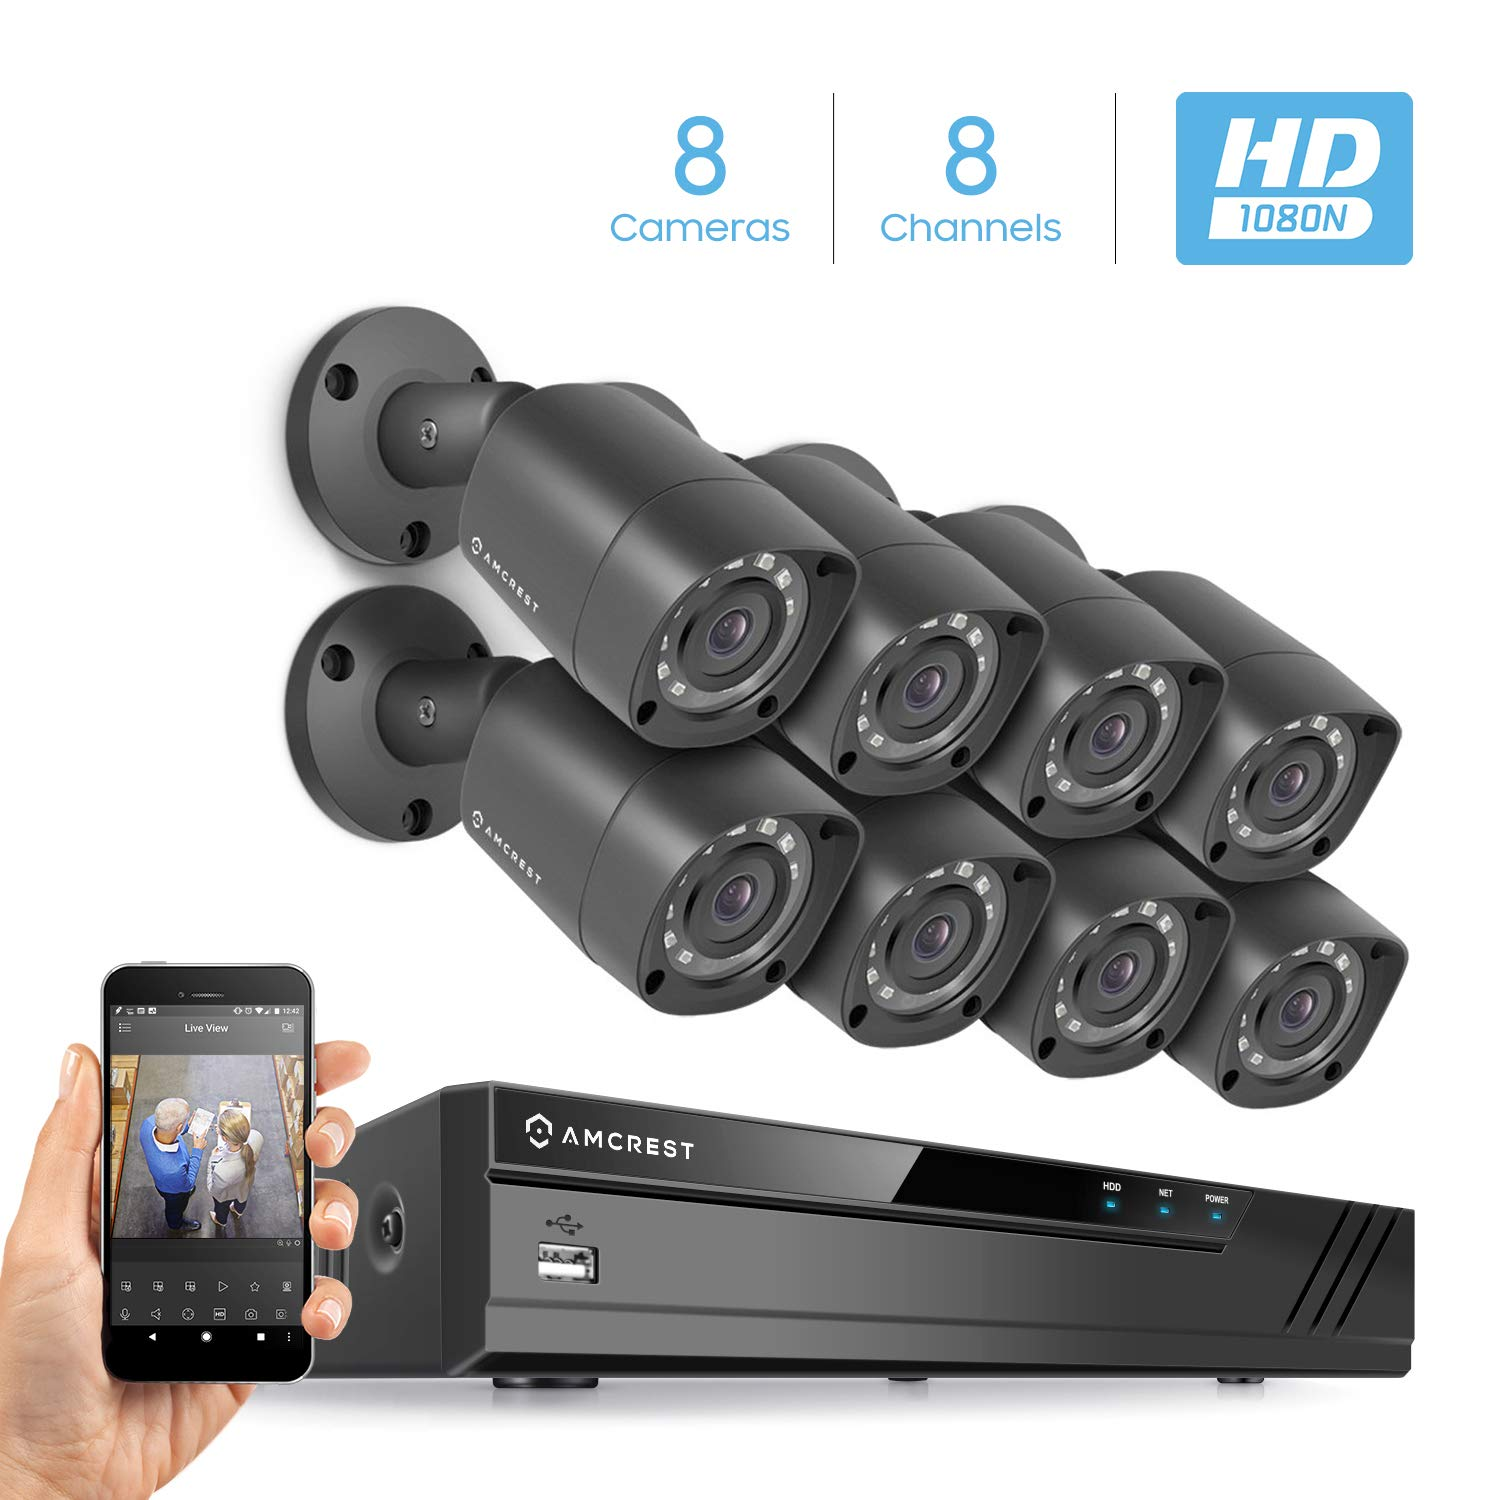 Amcrest 1080-Lite 16CH DVR Video Security Recorder, ProHD Pentabrid (5-in-1) Supports AHD, HD-TVI, HD-CVI, 960H, IP Cameras, HDD & Cameras NOT Included, Security Camera System (AMDVTENL16)